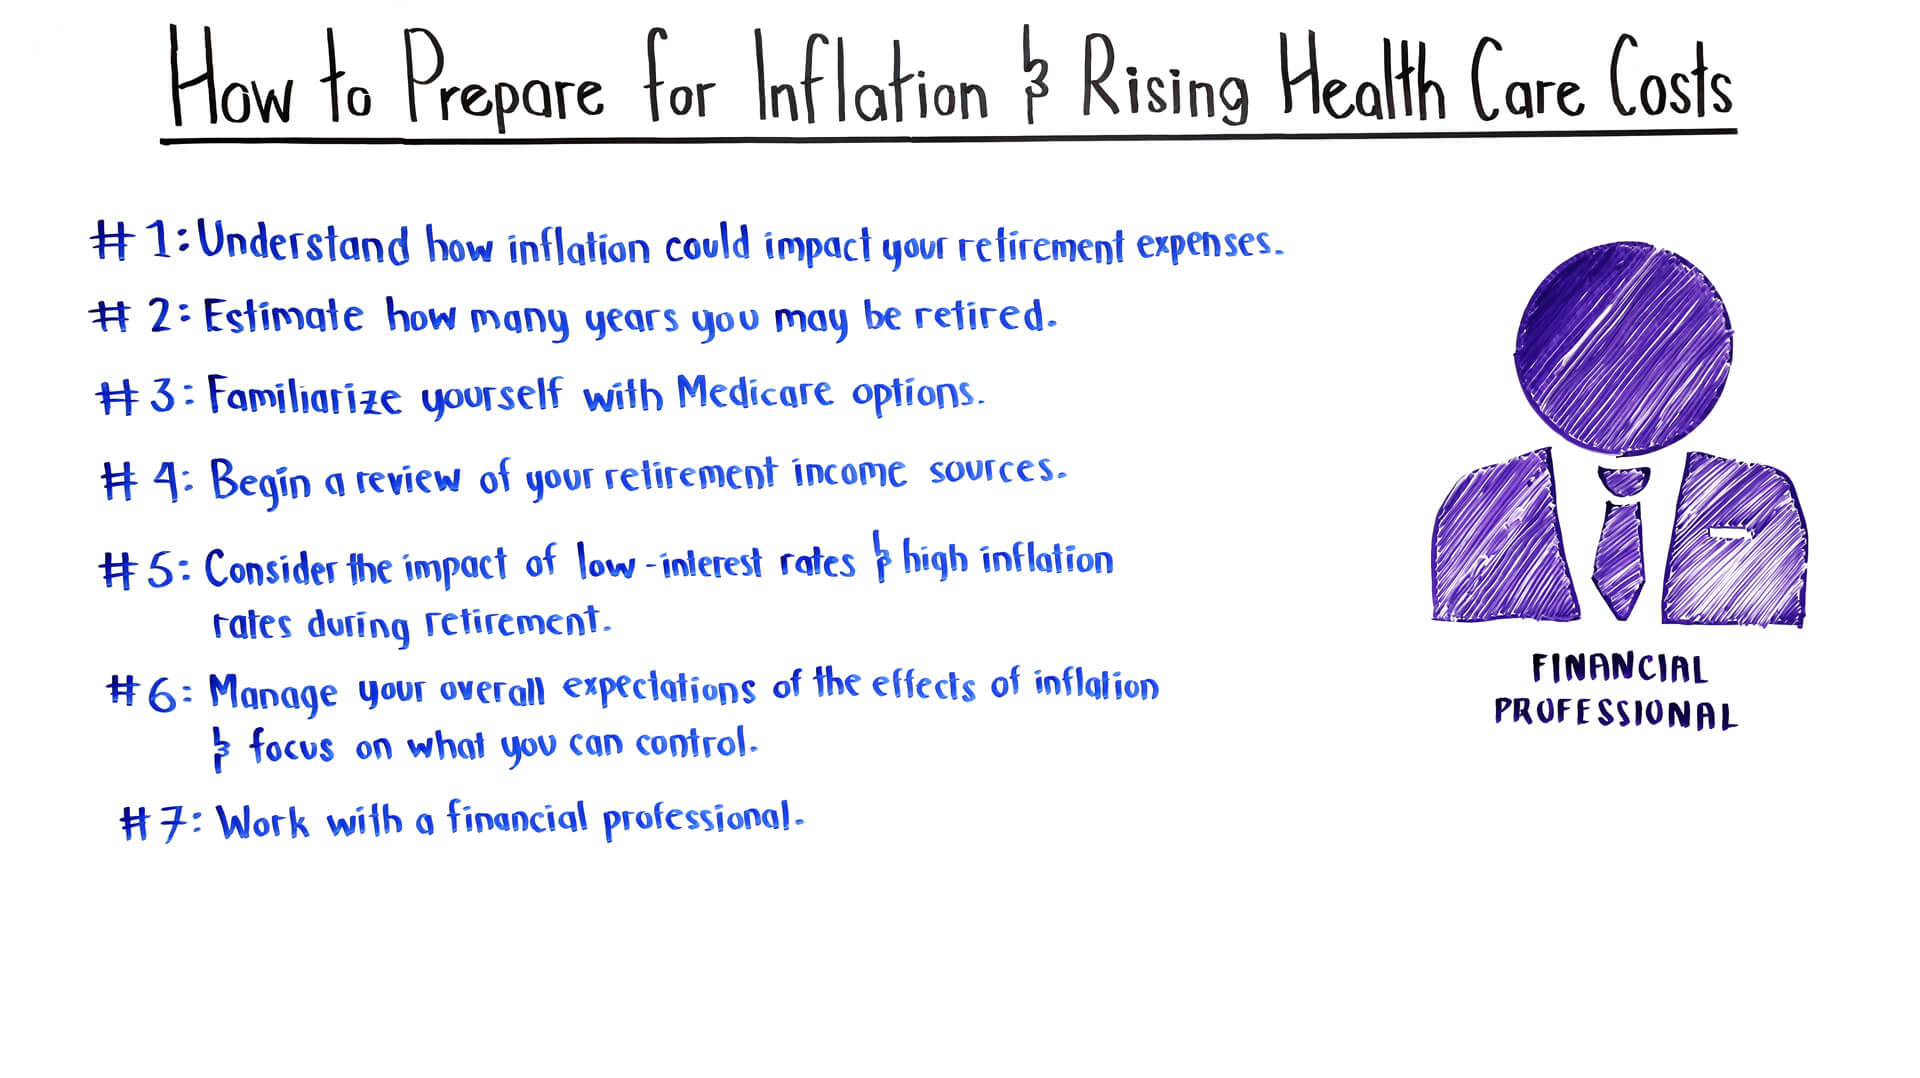 how to prepare for inflation and rising health care costs